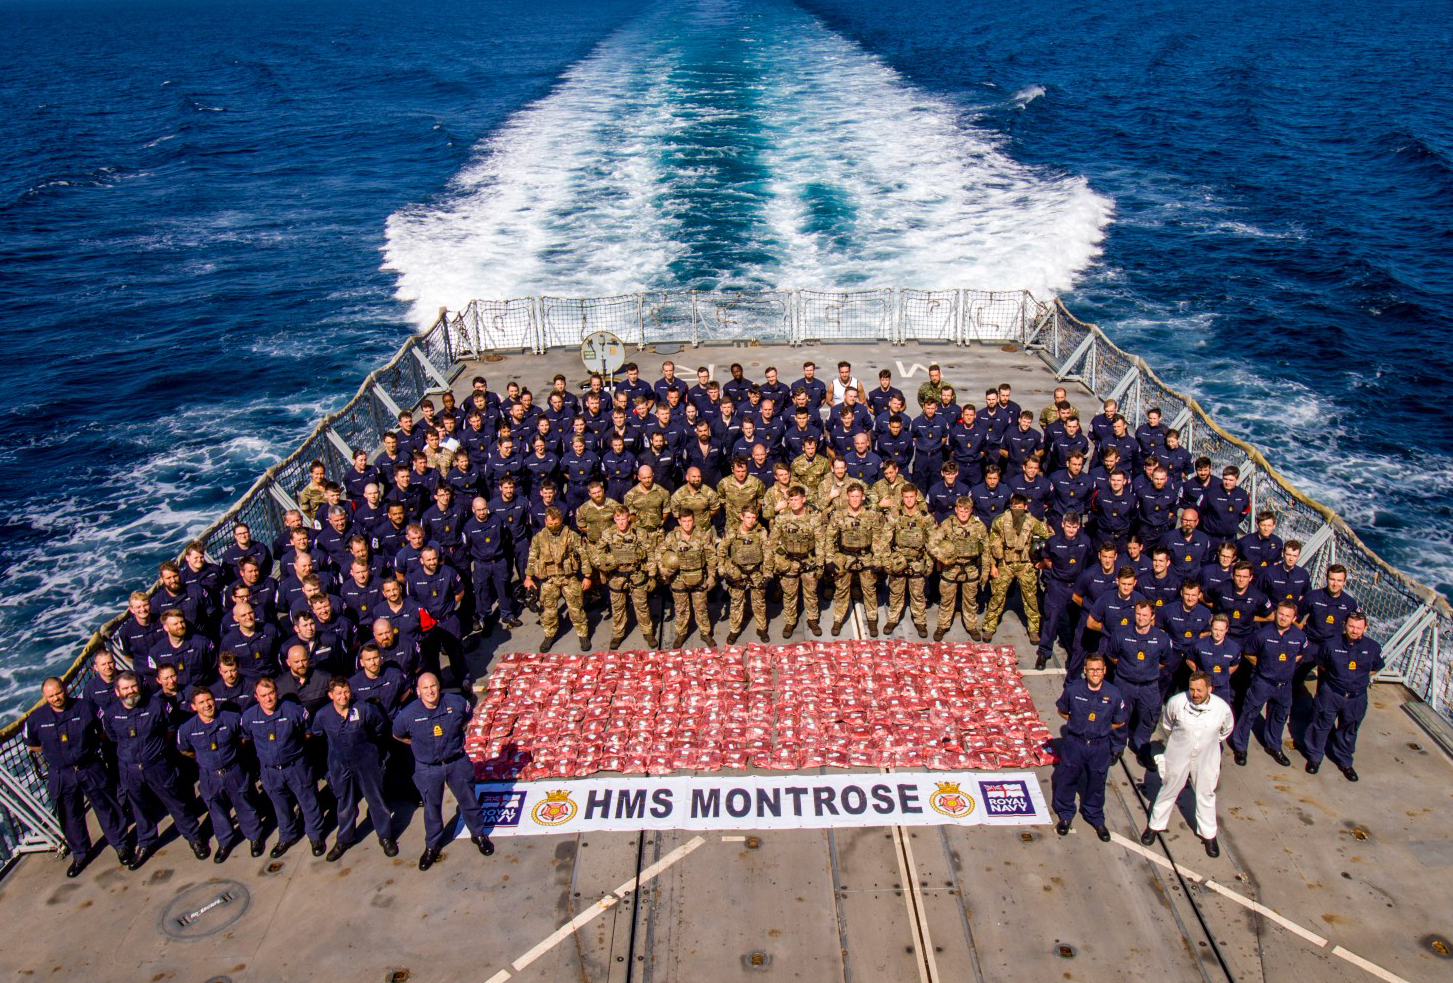 The Crew of HMS Montrose on the flight deck with their 2.7 tonne capture on Feb. 6, 2021.